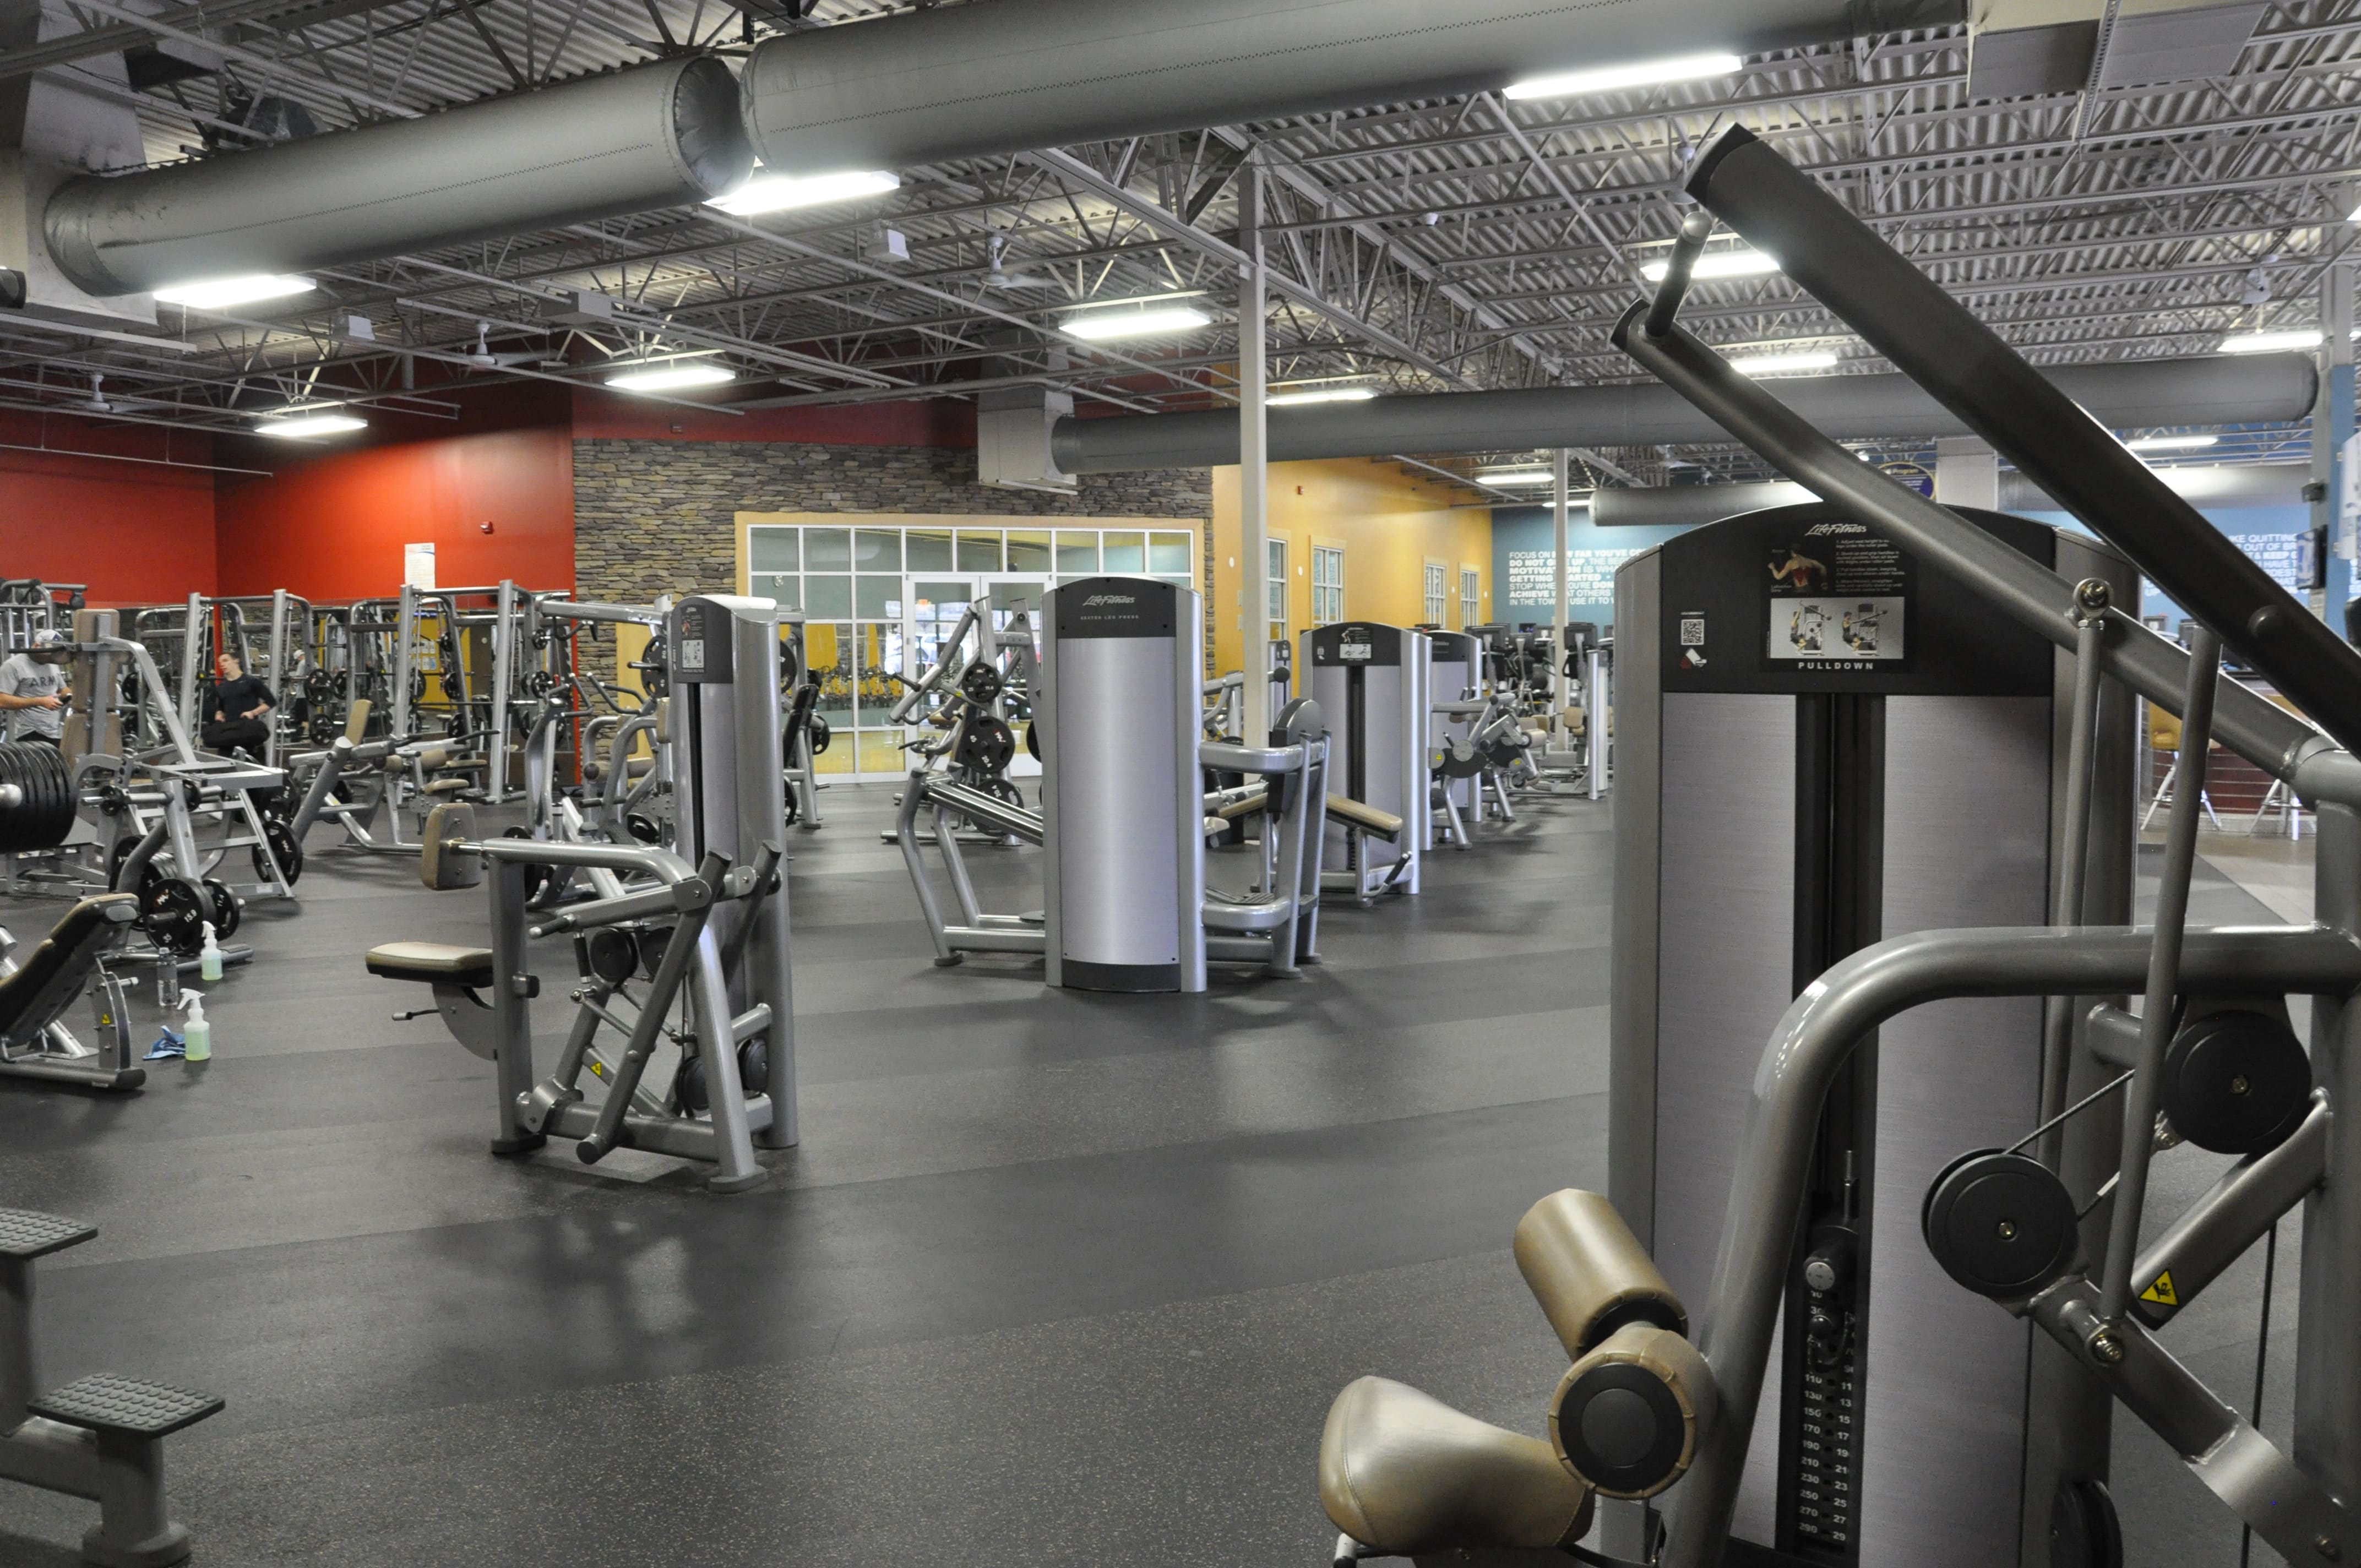 Club Fitness image 3